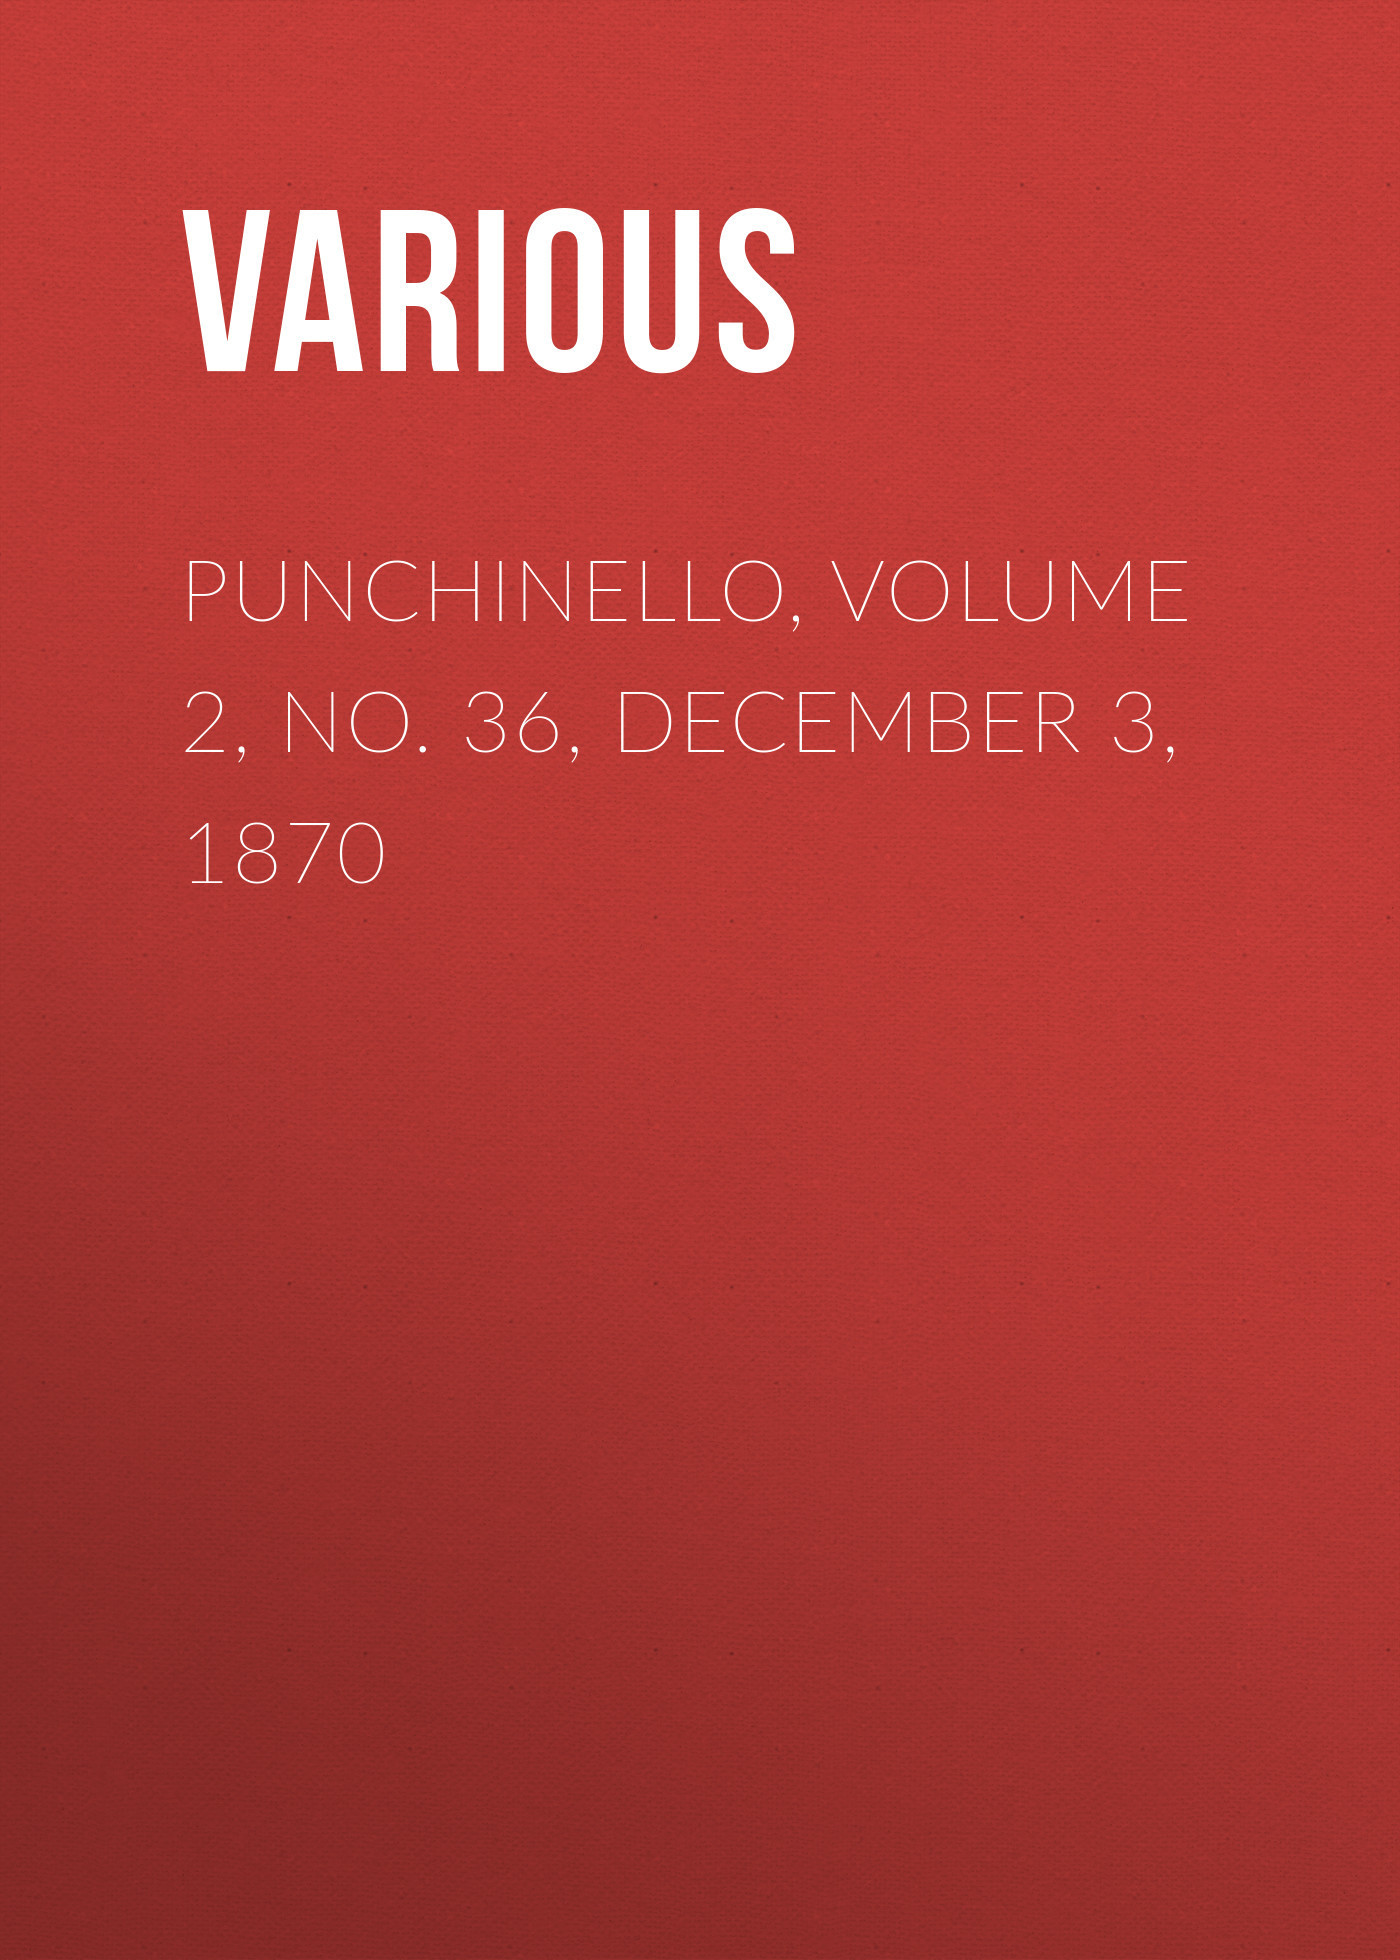 Punchinello, Volume 2, No. 36, December 3, 1870